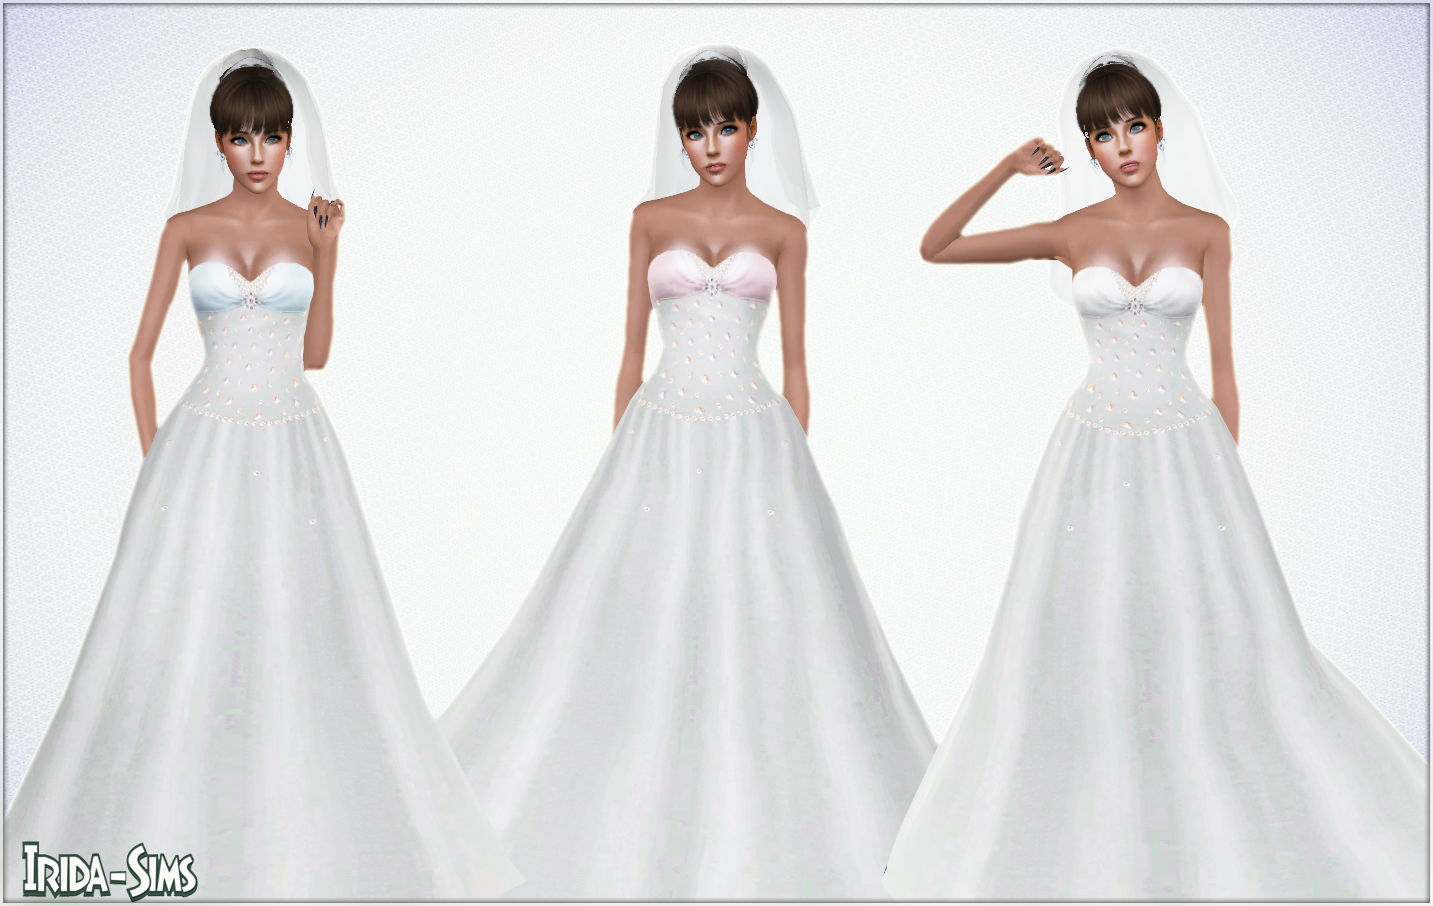 Sims 4 Bridesmaid Dresses